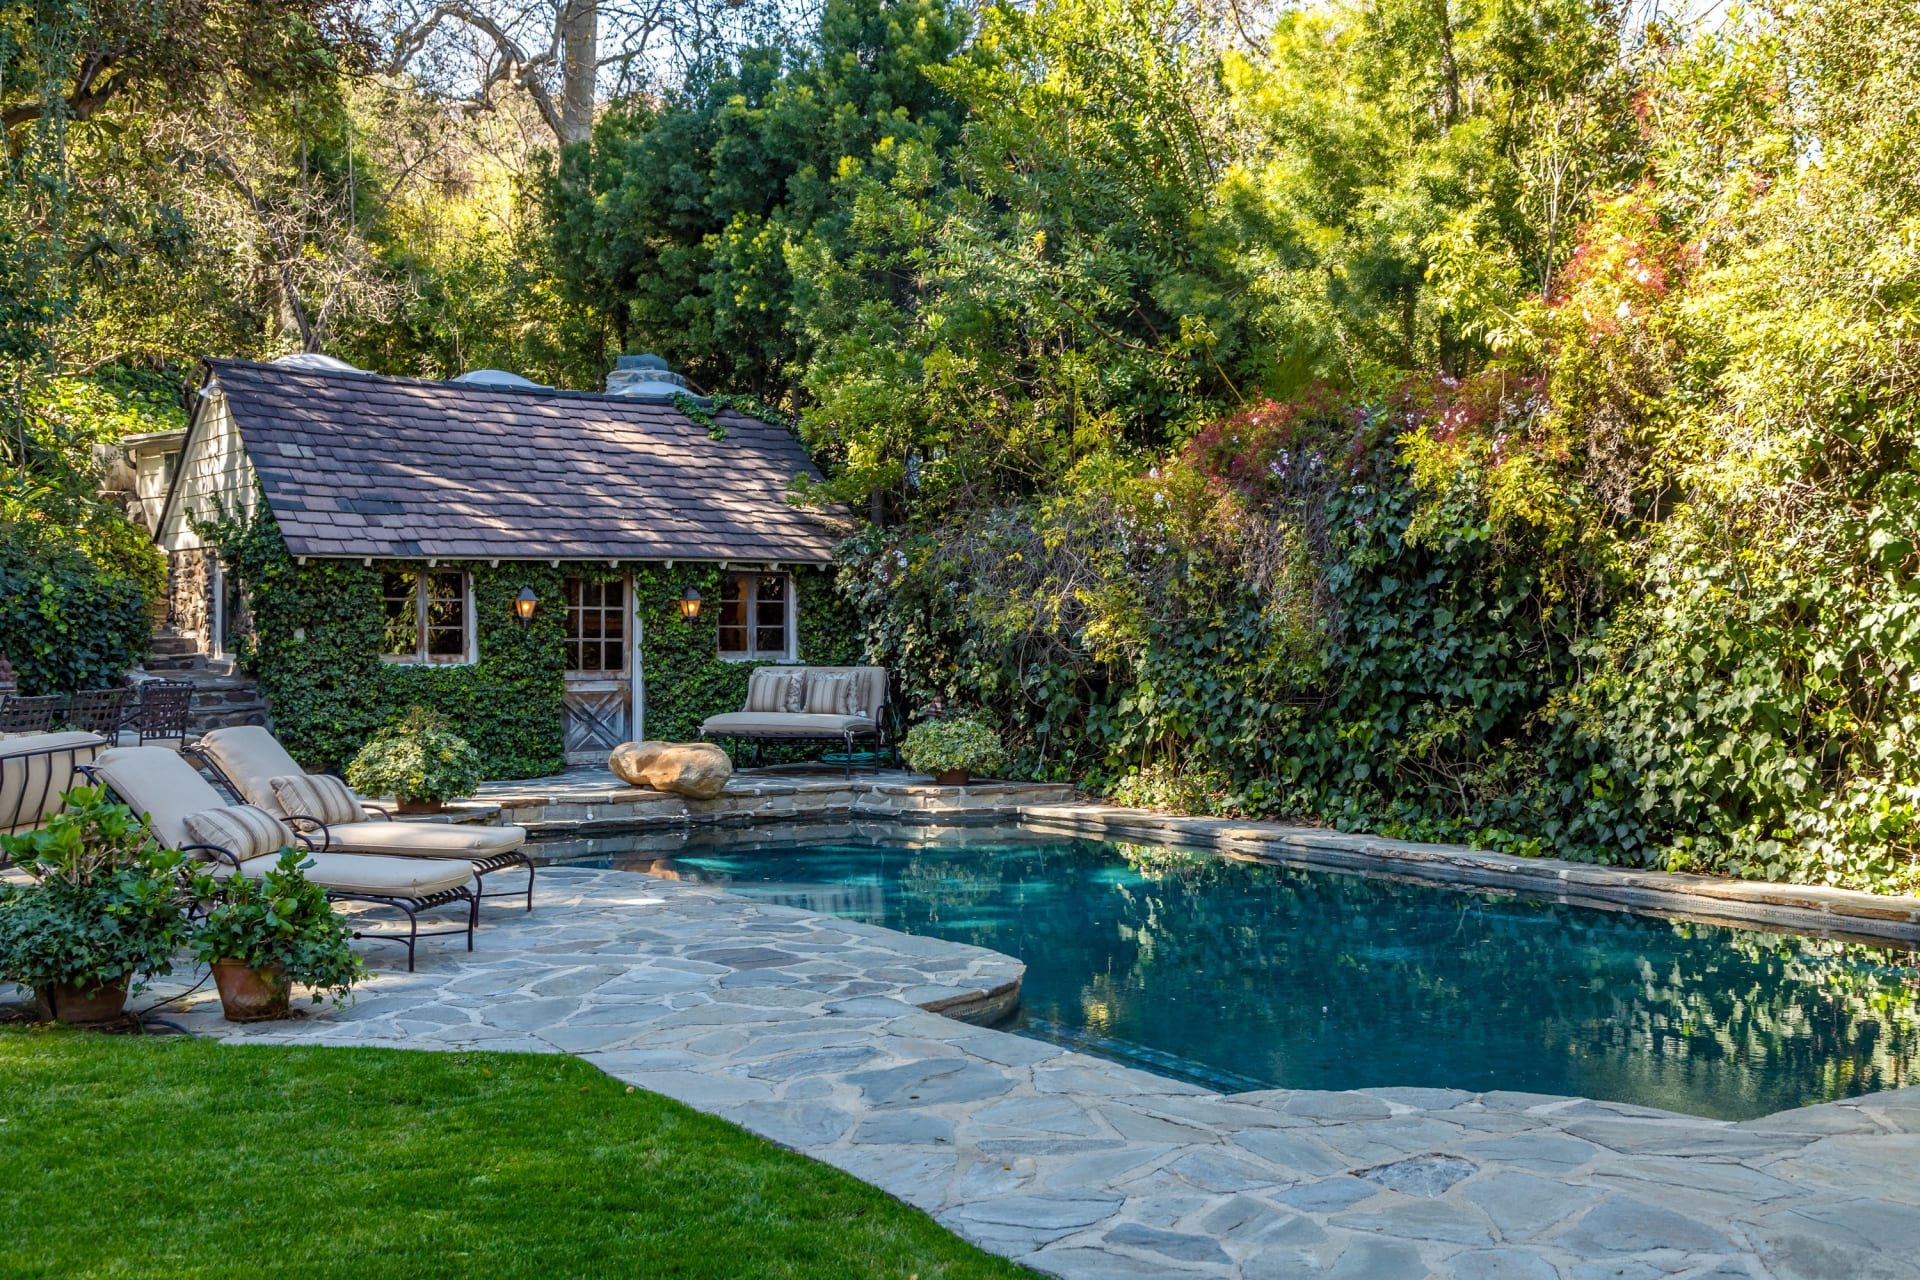 Fabled Compound in Exquisite Garden Setting